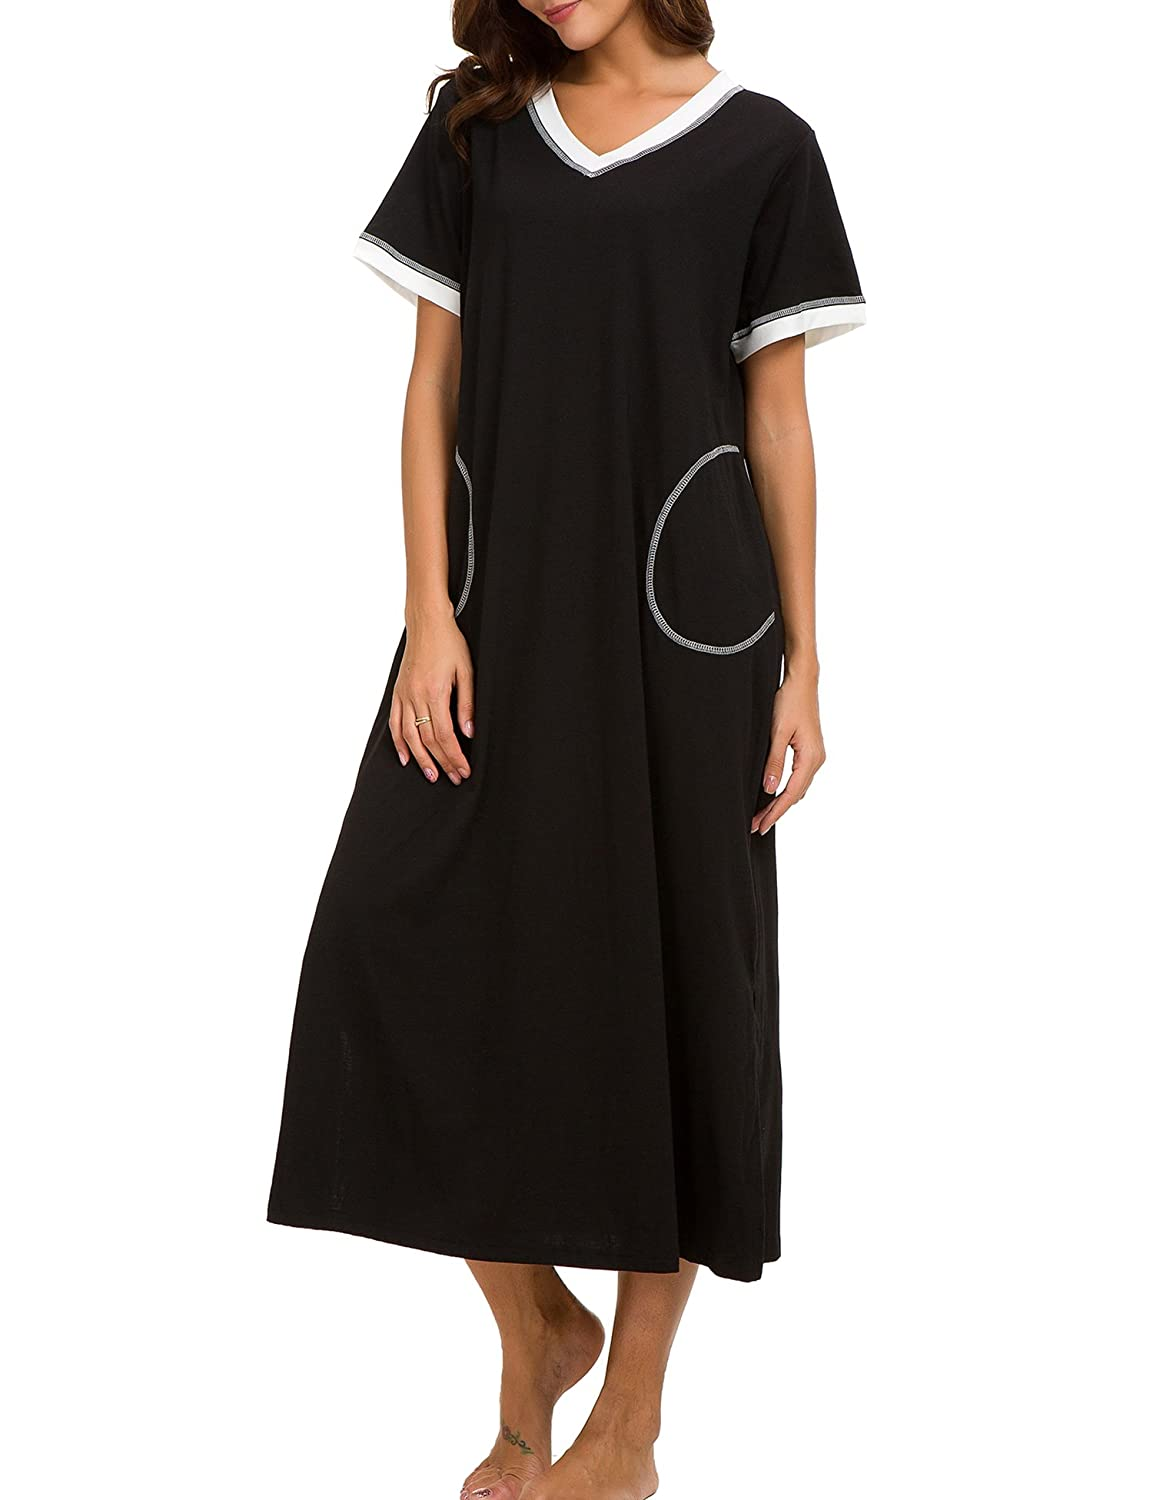 Top 10 wholesale Short Sleeve Cotton Nightgown - Chinabrands.com d081ca72b